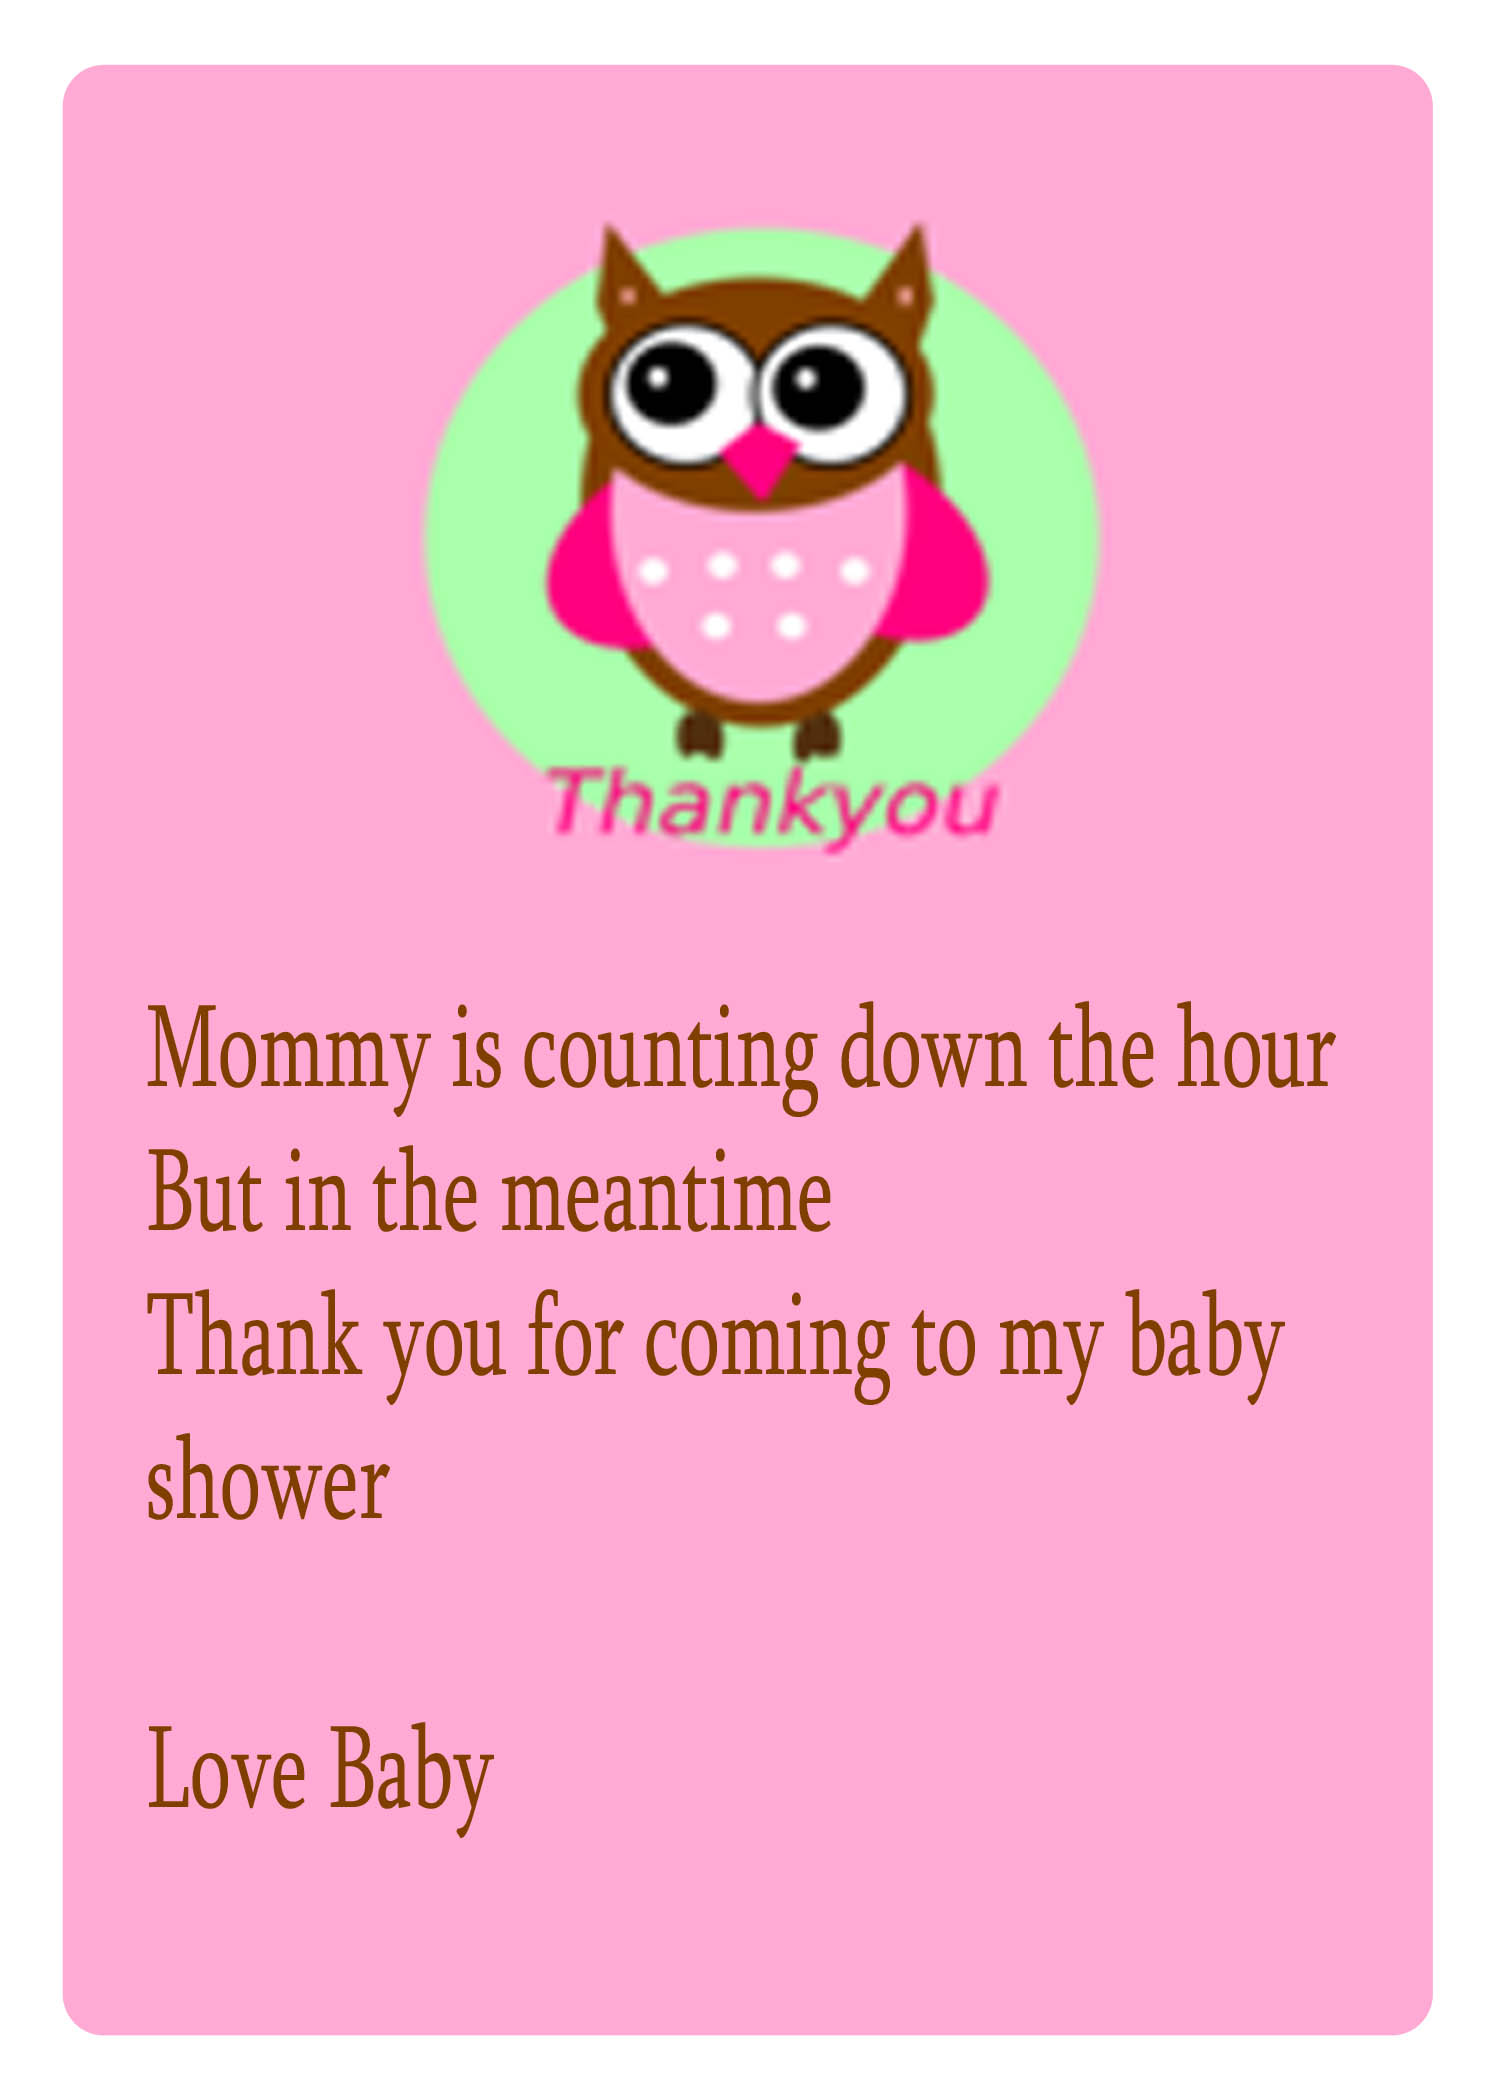 Full Size of Baby Shower:72+ Rousing Baby Shower Thank You Cards Picture Ideas Baby Shower Cake Ideas Baby Shower Decorations Baby Shower Tableware Juegos Para Baby Shower